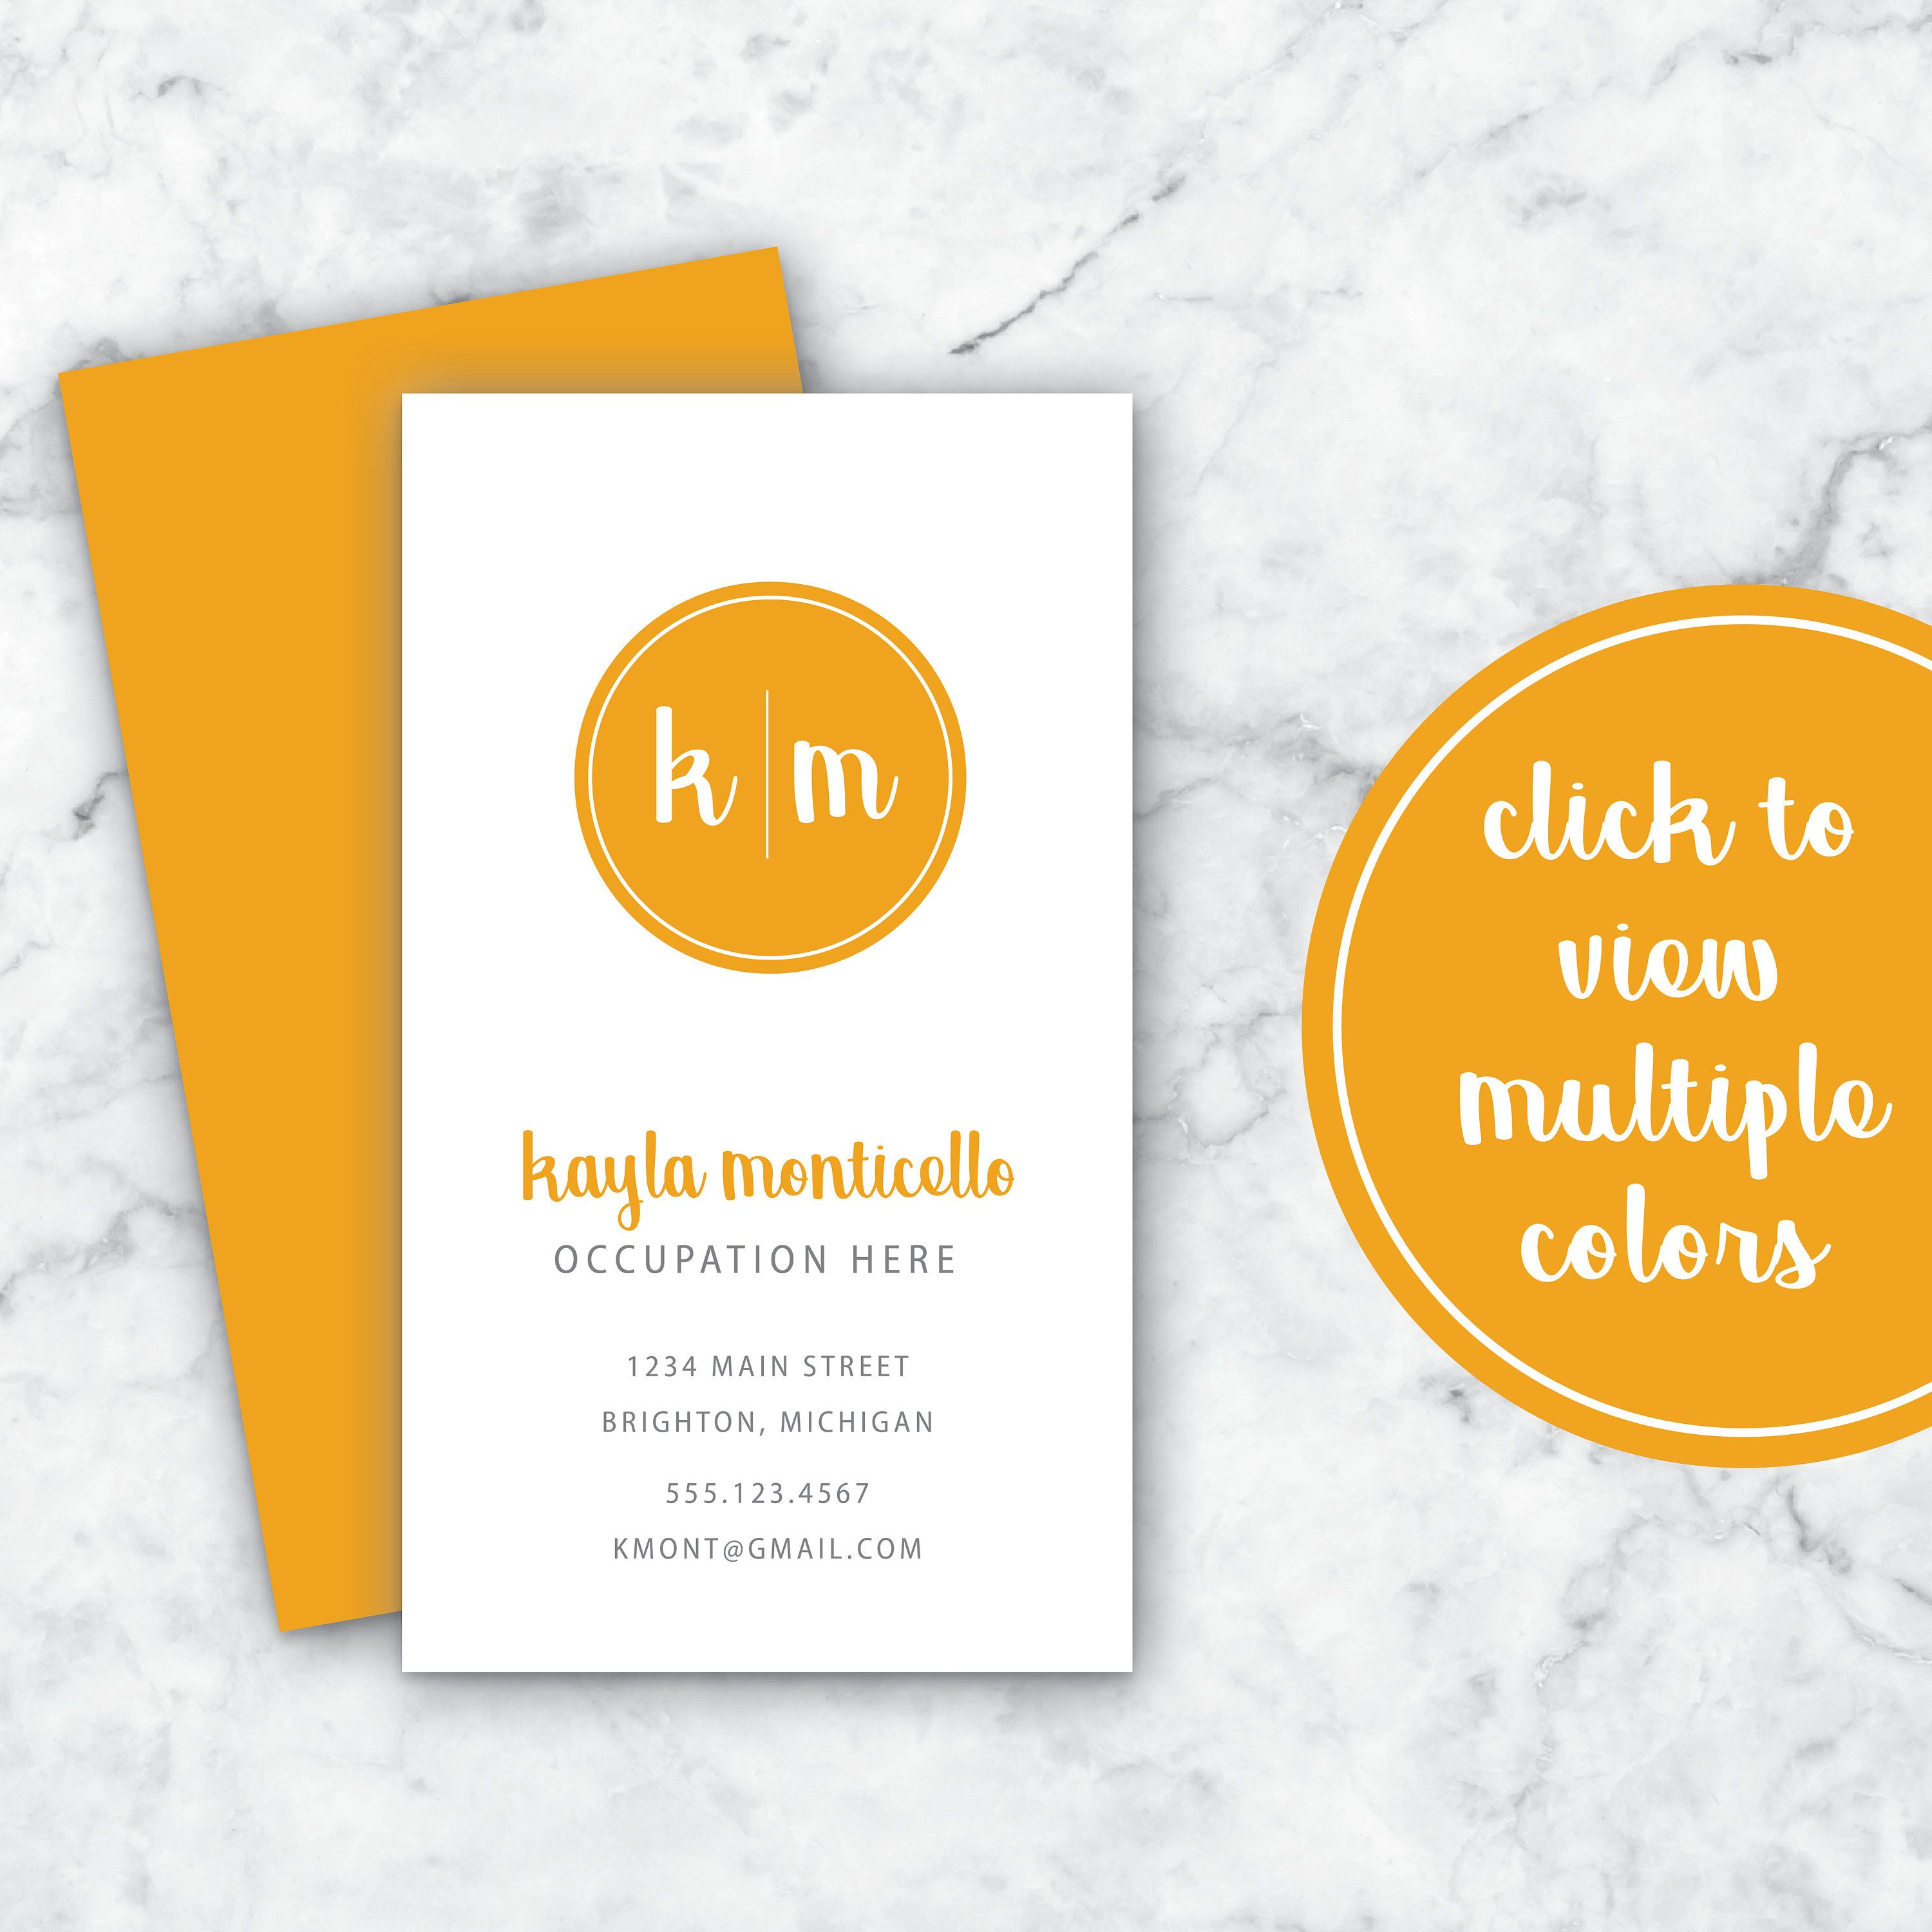 Business cards personal initials hairstylist business cards etsy business cards personal initials hairstylist business cards etsy shop httpswww reheart Image collections